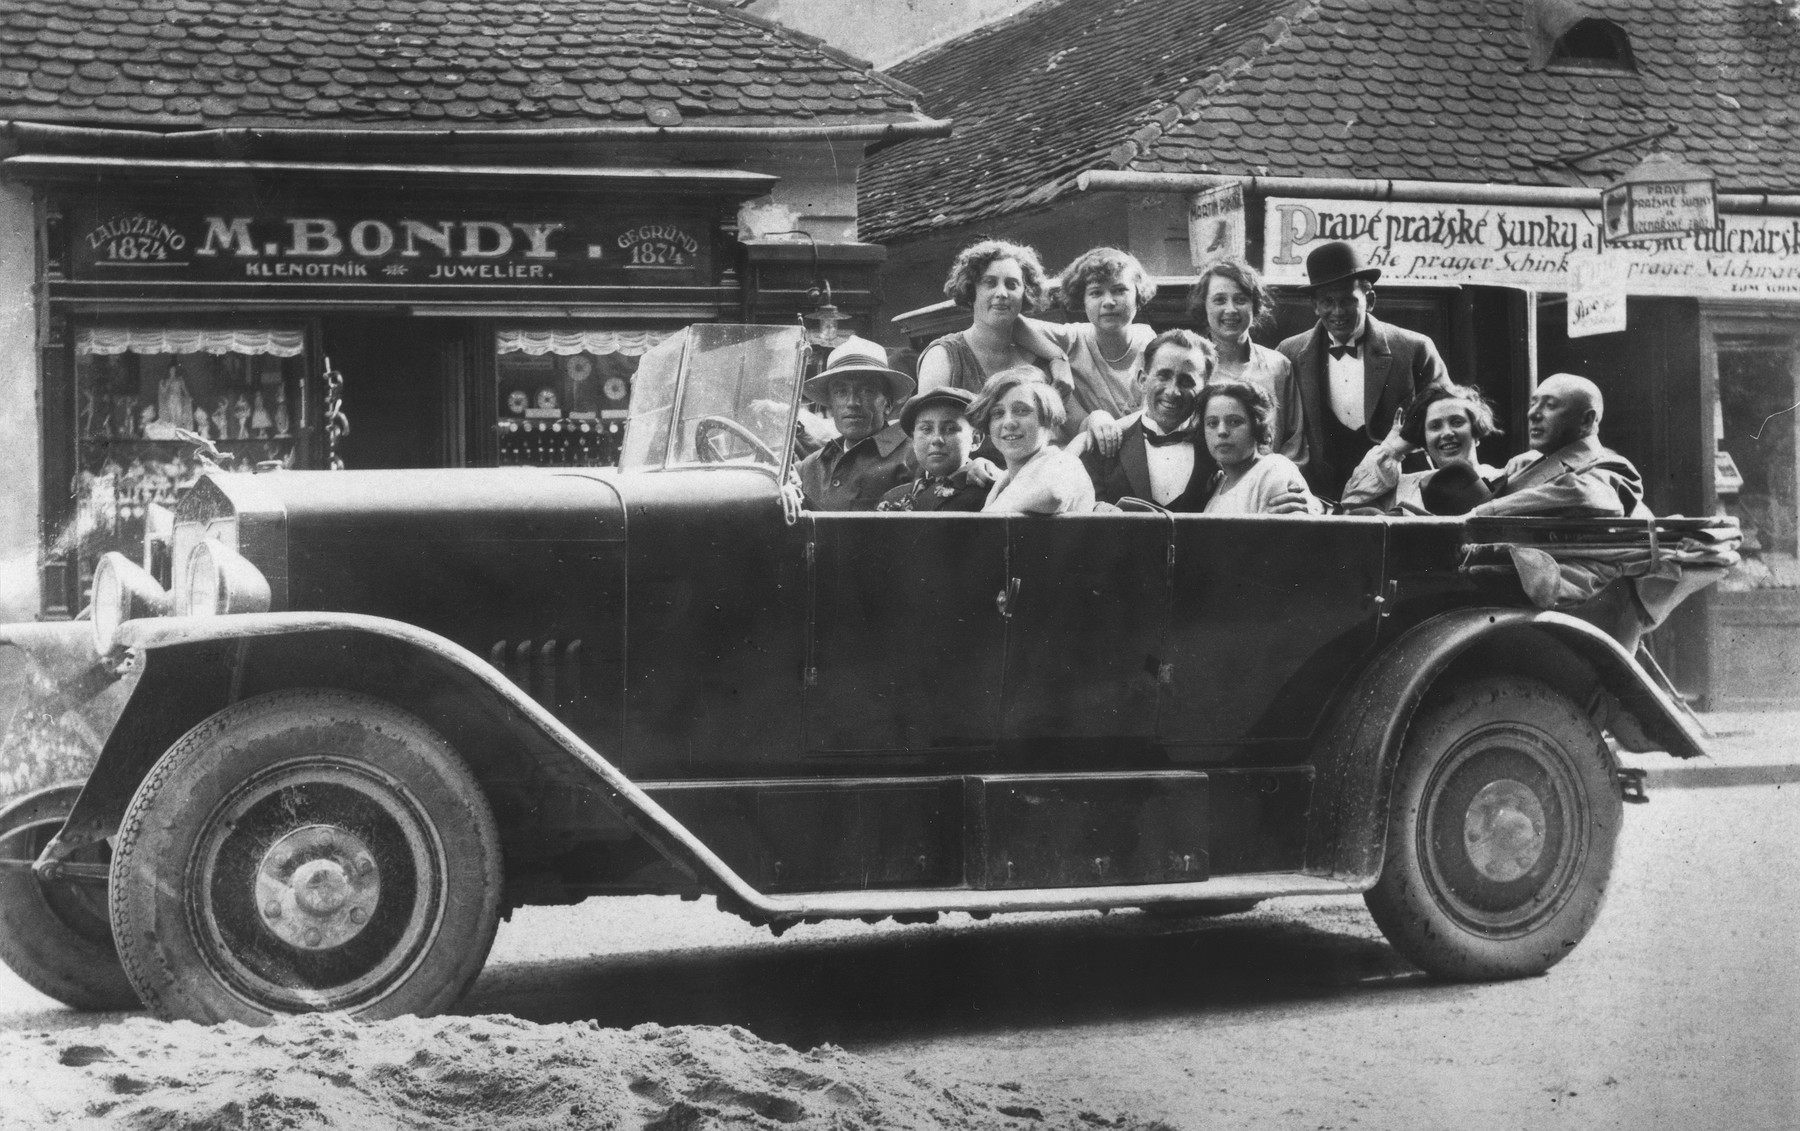 The Beck family goes for a ride in a large automobile.  Among those pictured are Margit, Erwin, Olga, Bela, Fredericka and Ilona Beck.